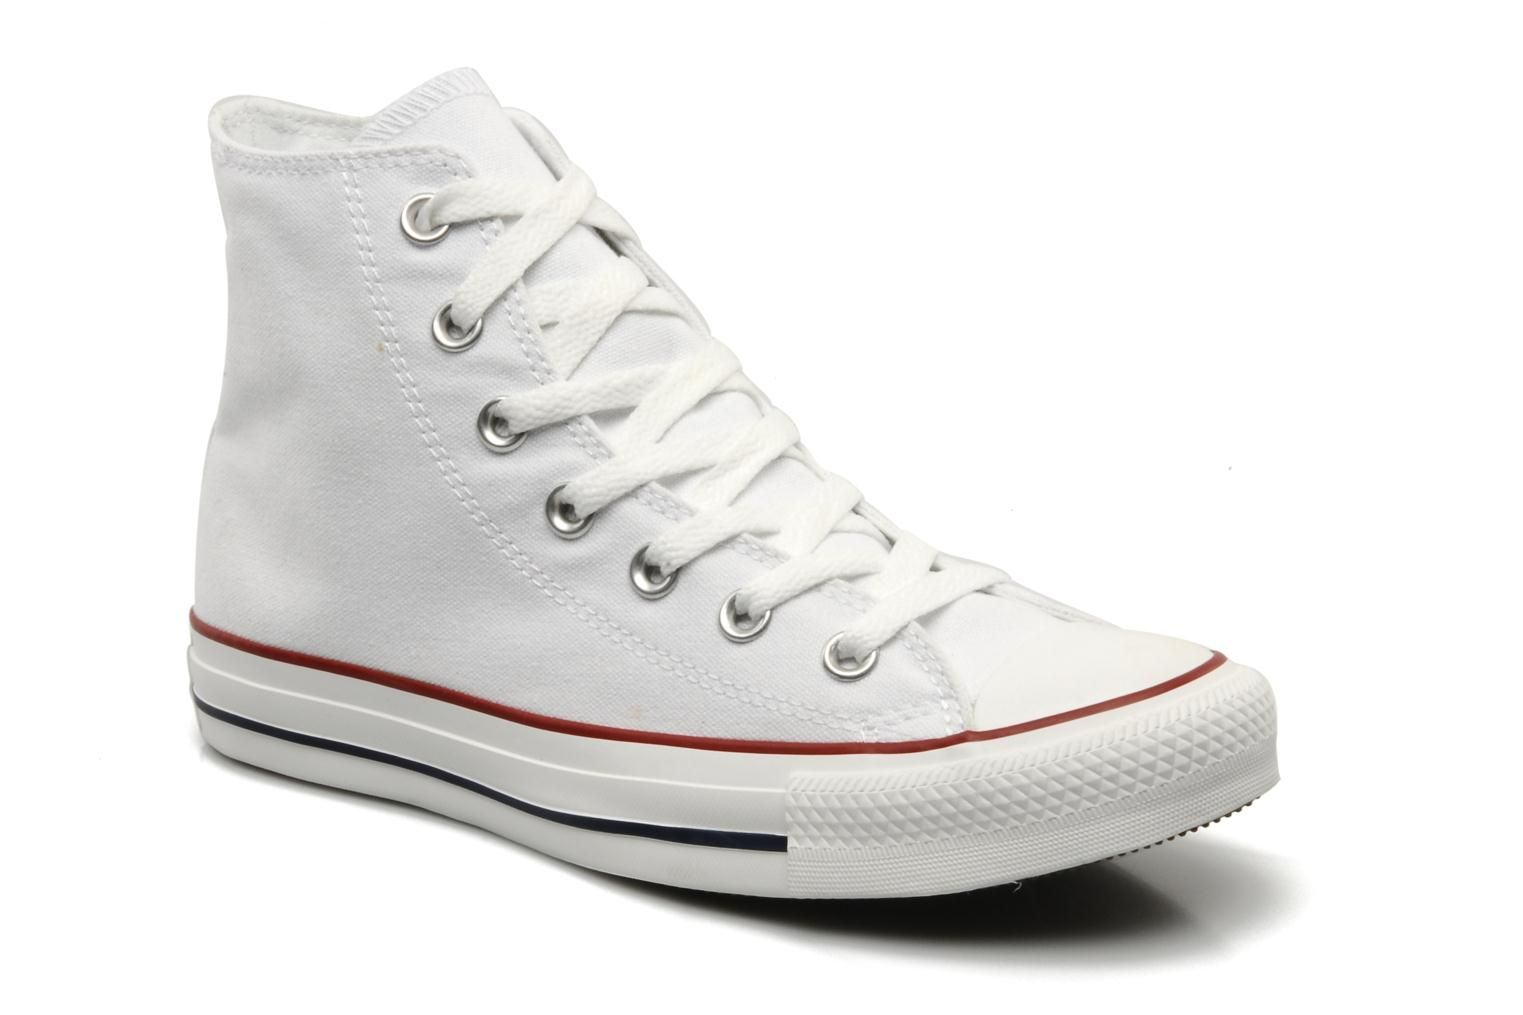 320 Free Images - Photos, Illustrations, Vector graphics: Converse |  Converse | Pinterest | Converse, Converse shoes and Footwear